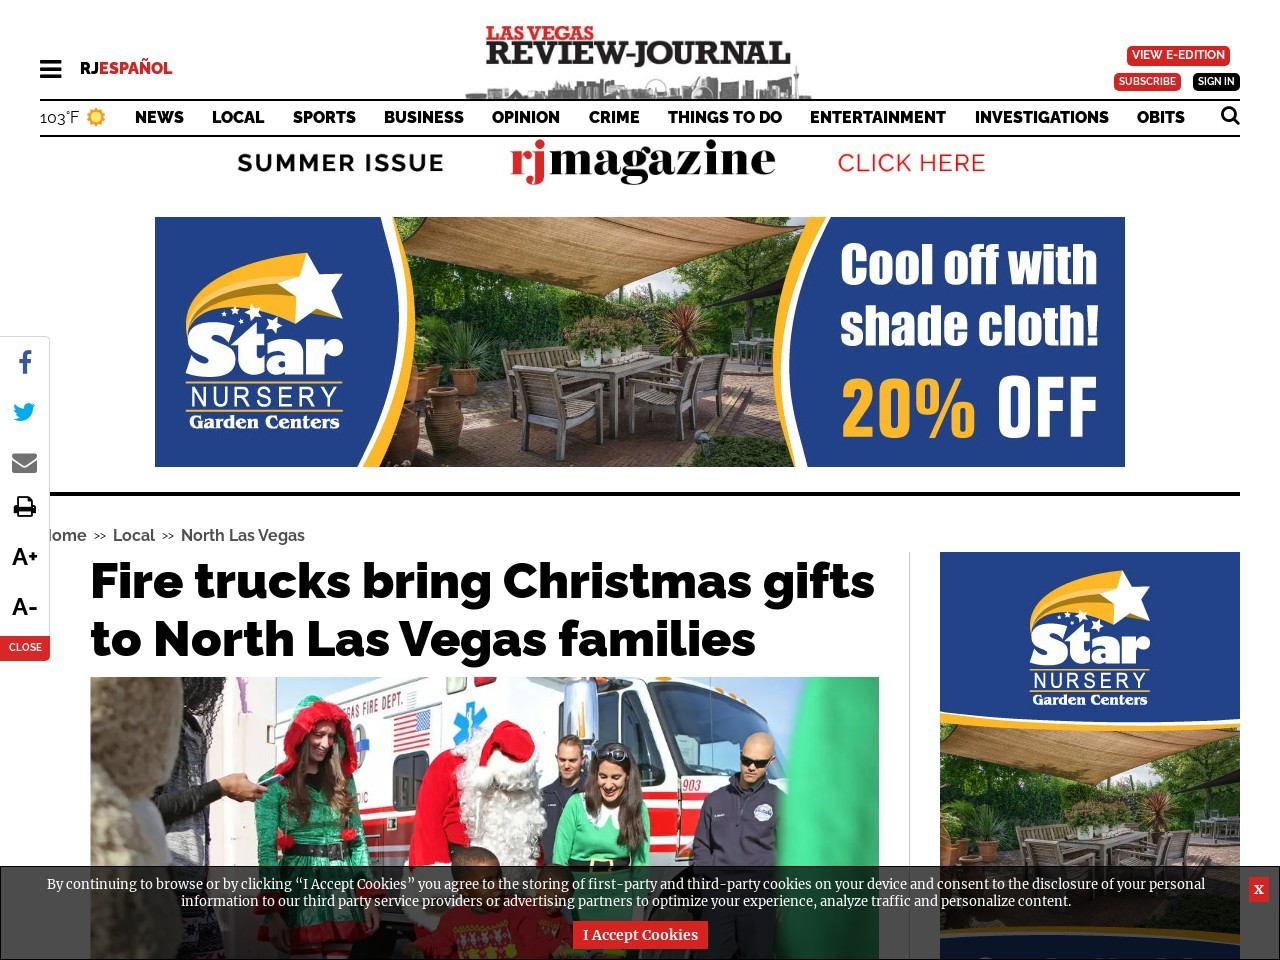 Fire trucks bring Christmas gifts to North Las Vegas families